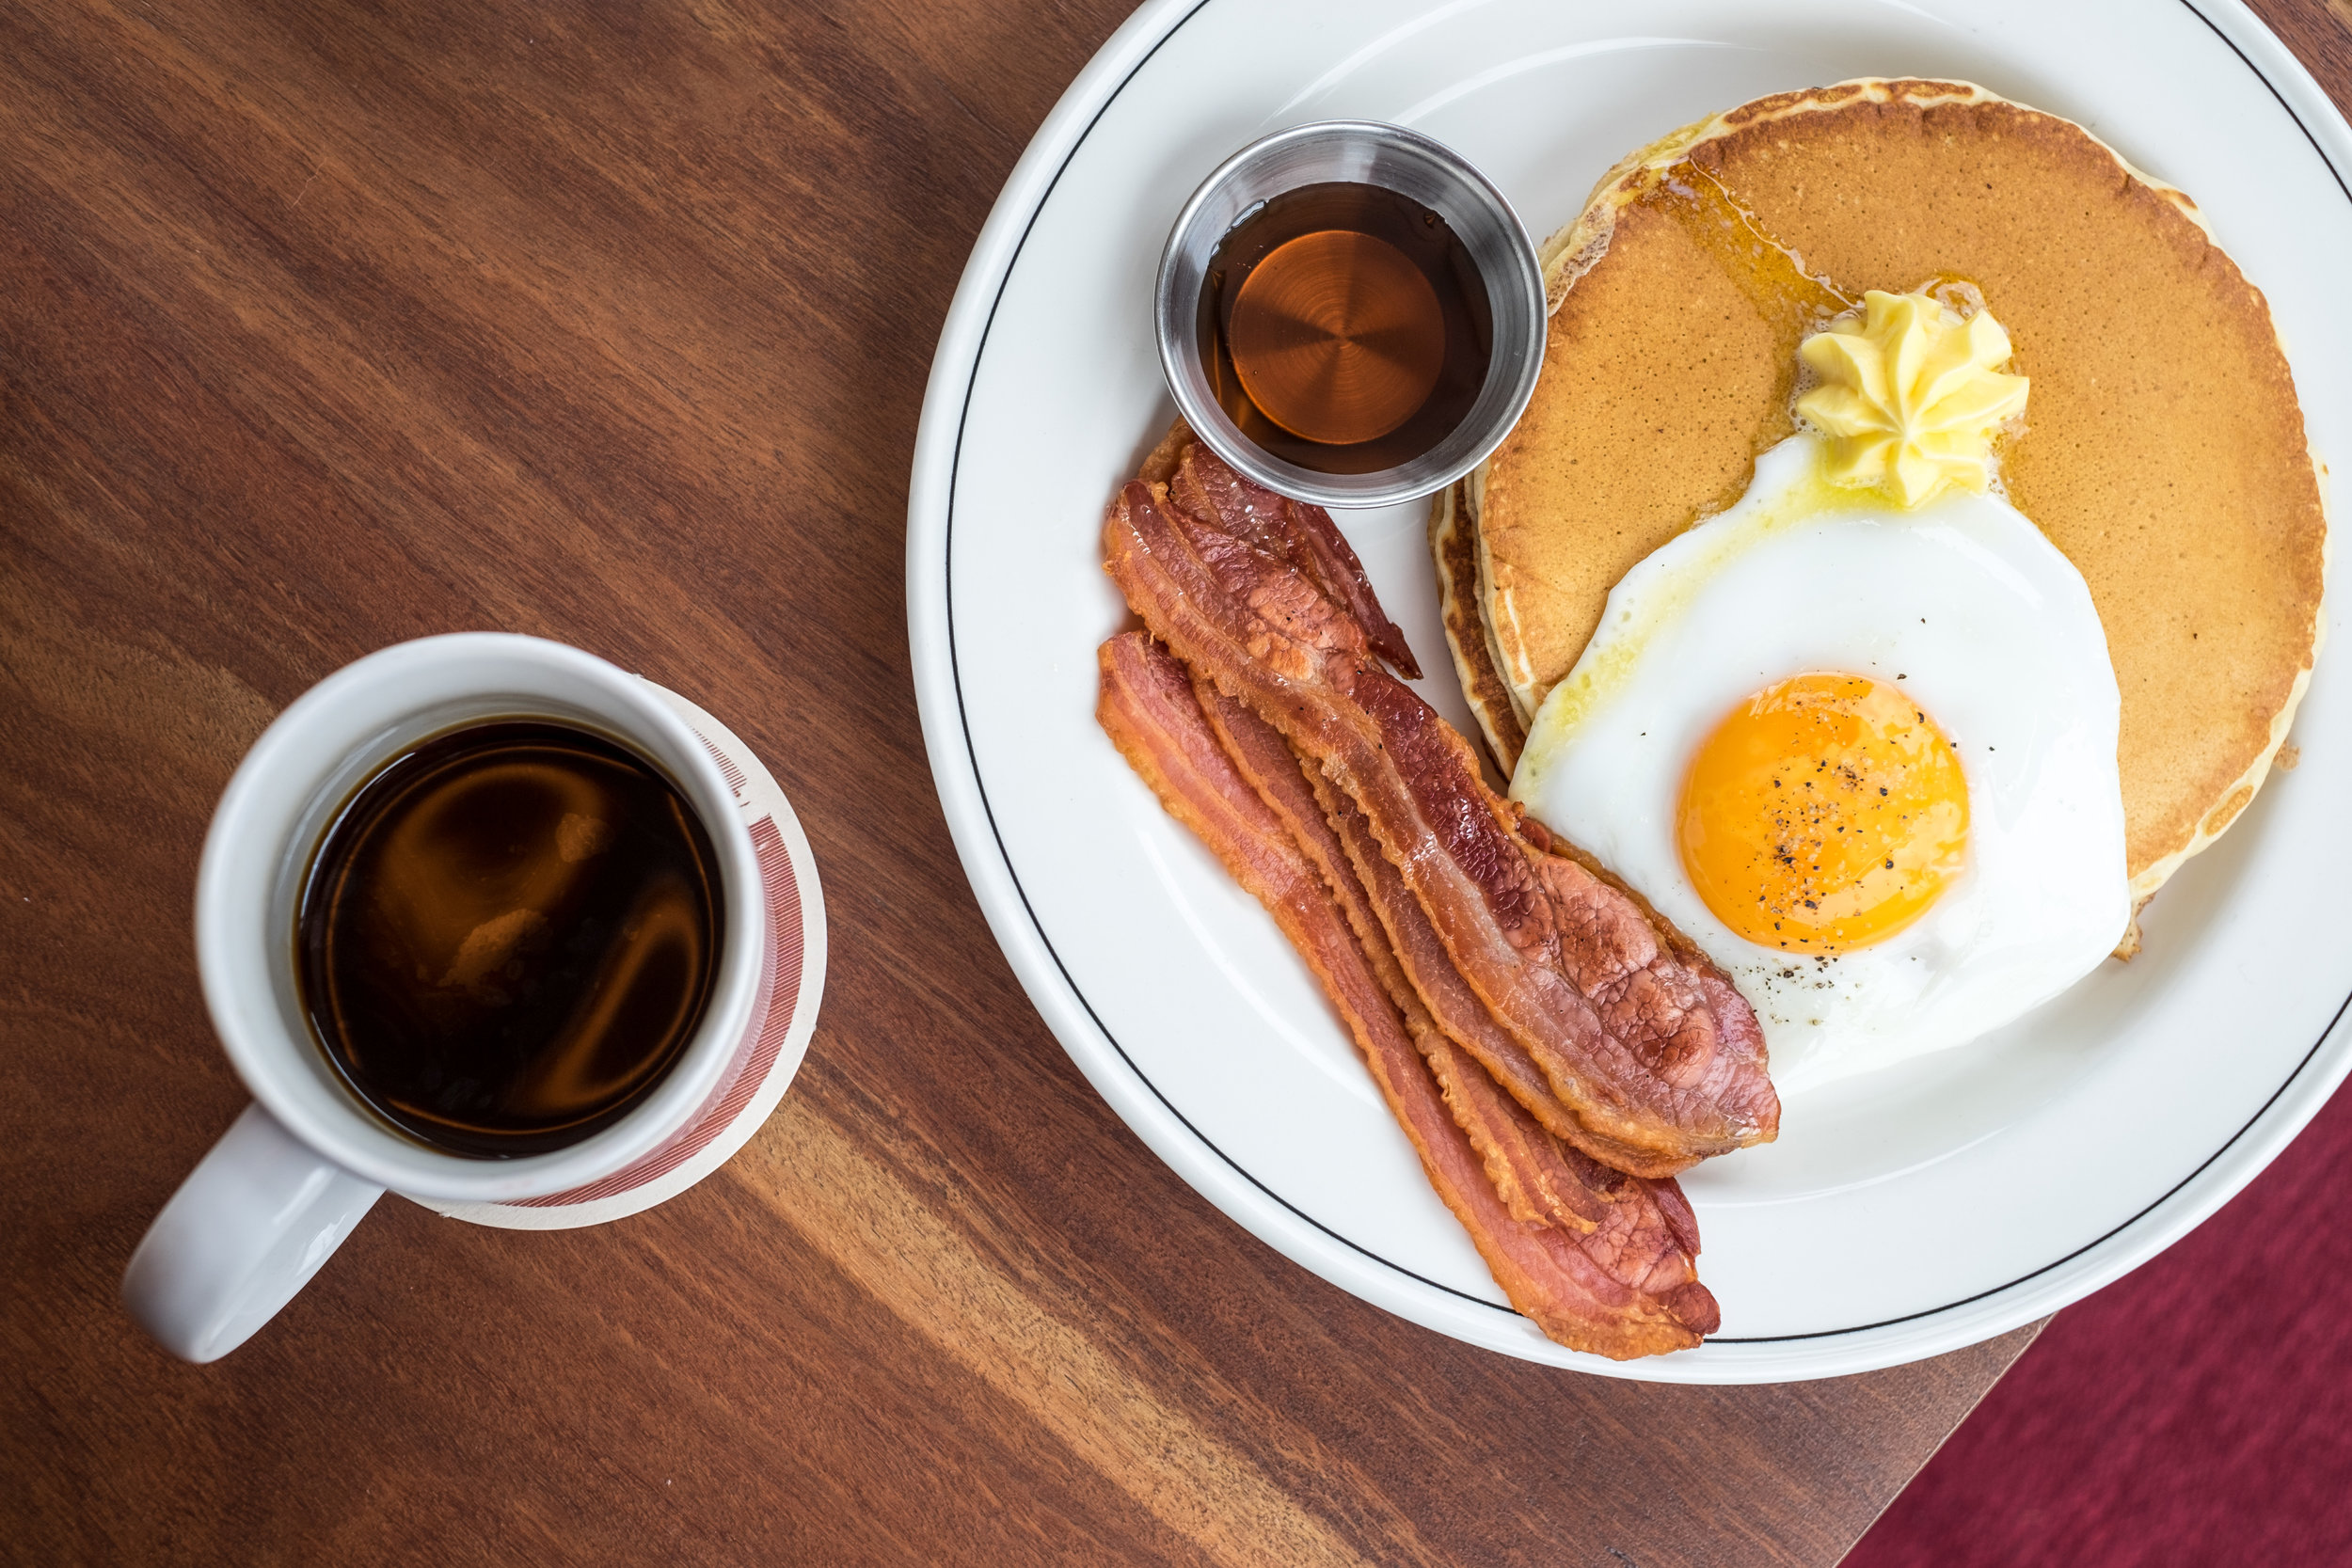 is bacon good for you or bad for you?